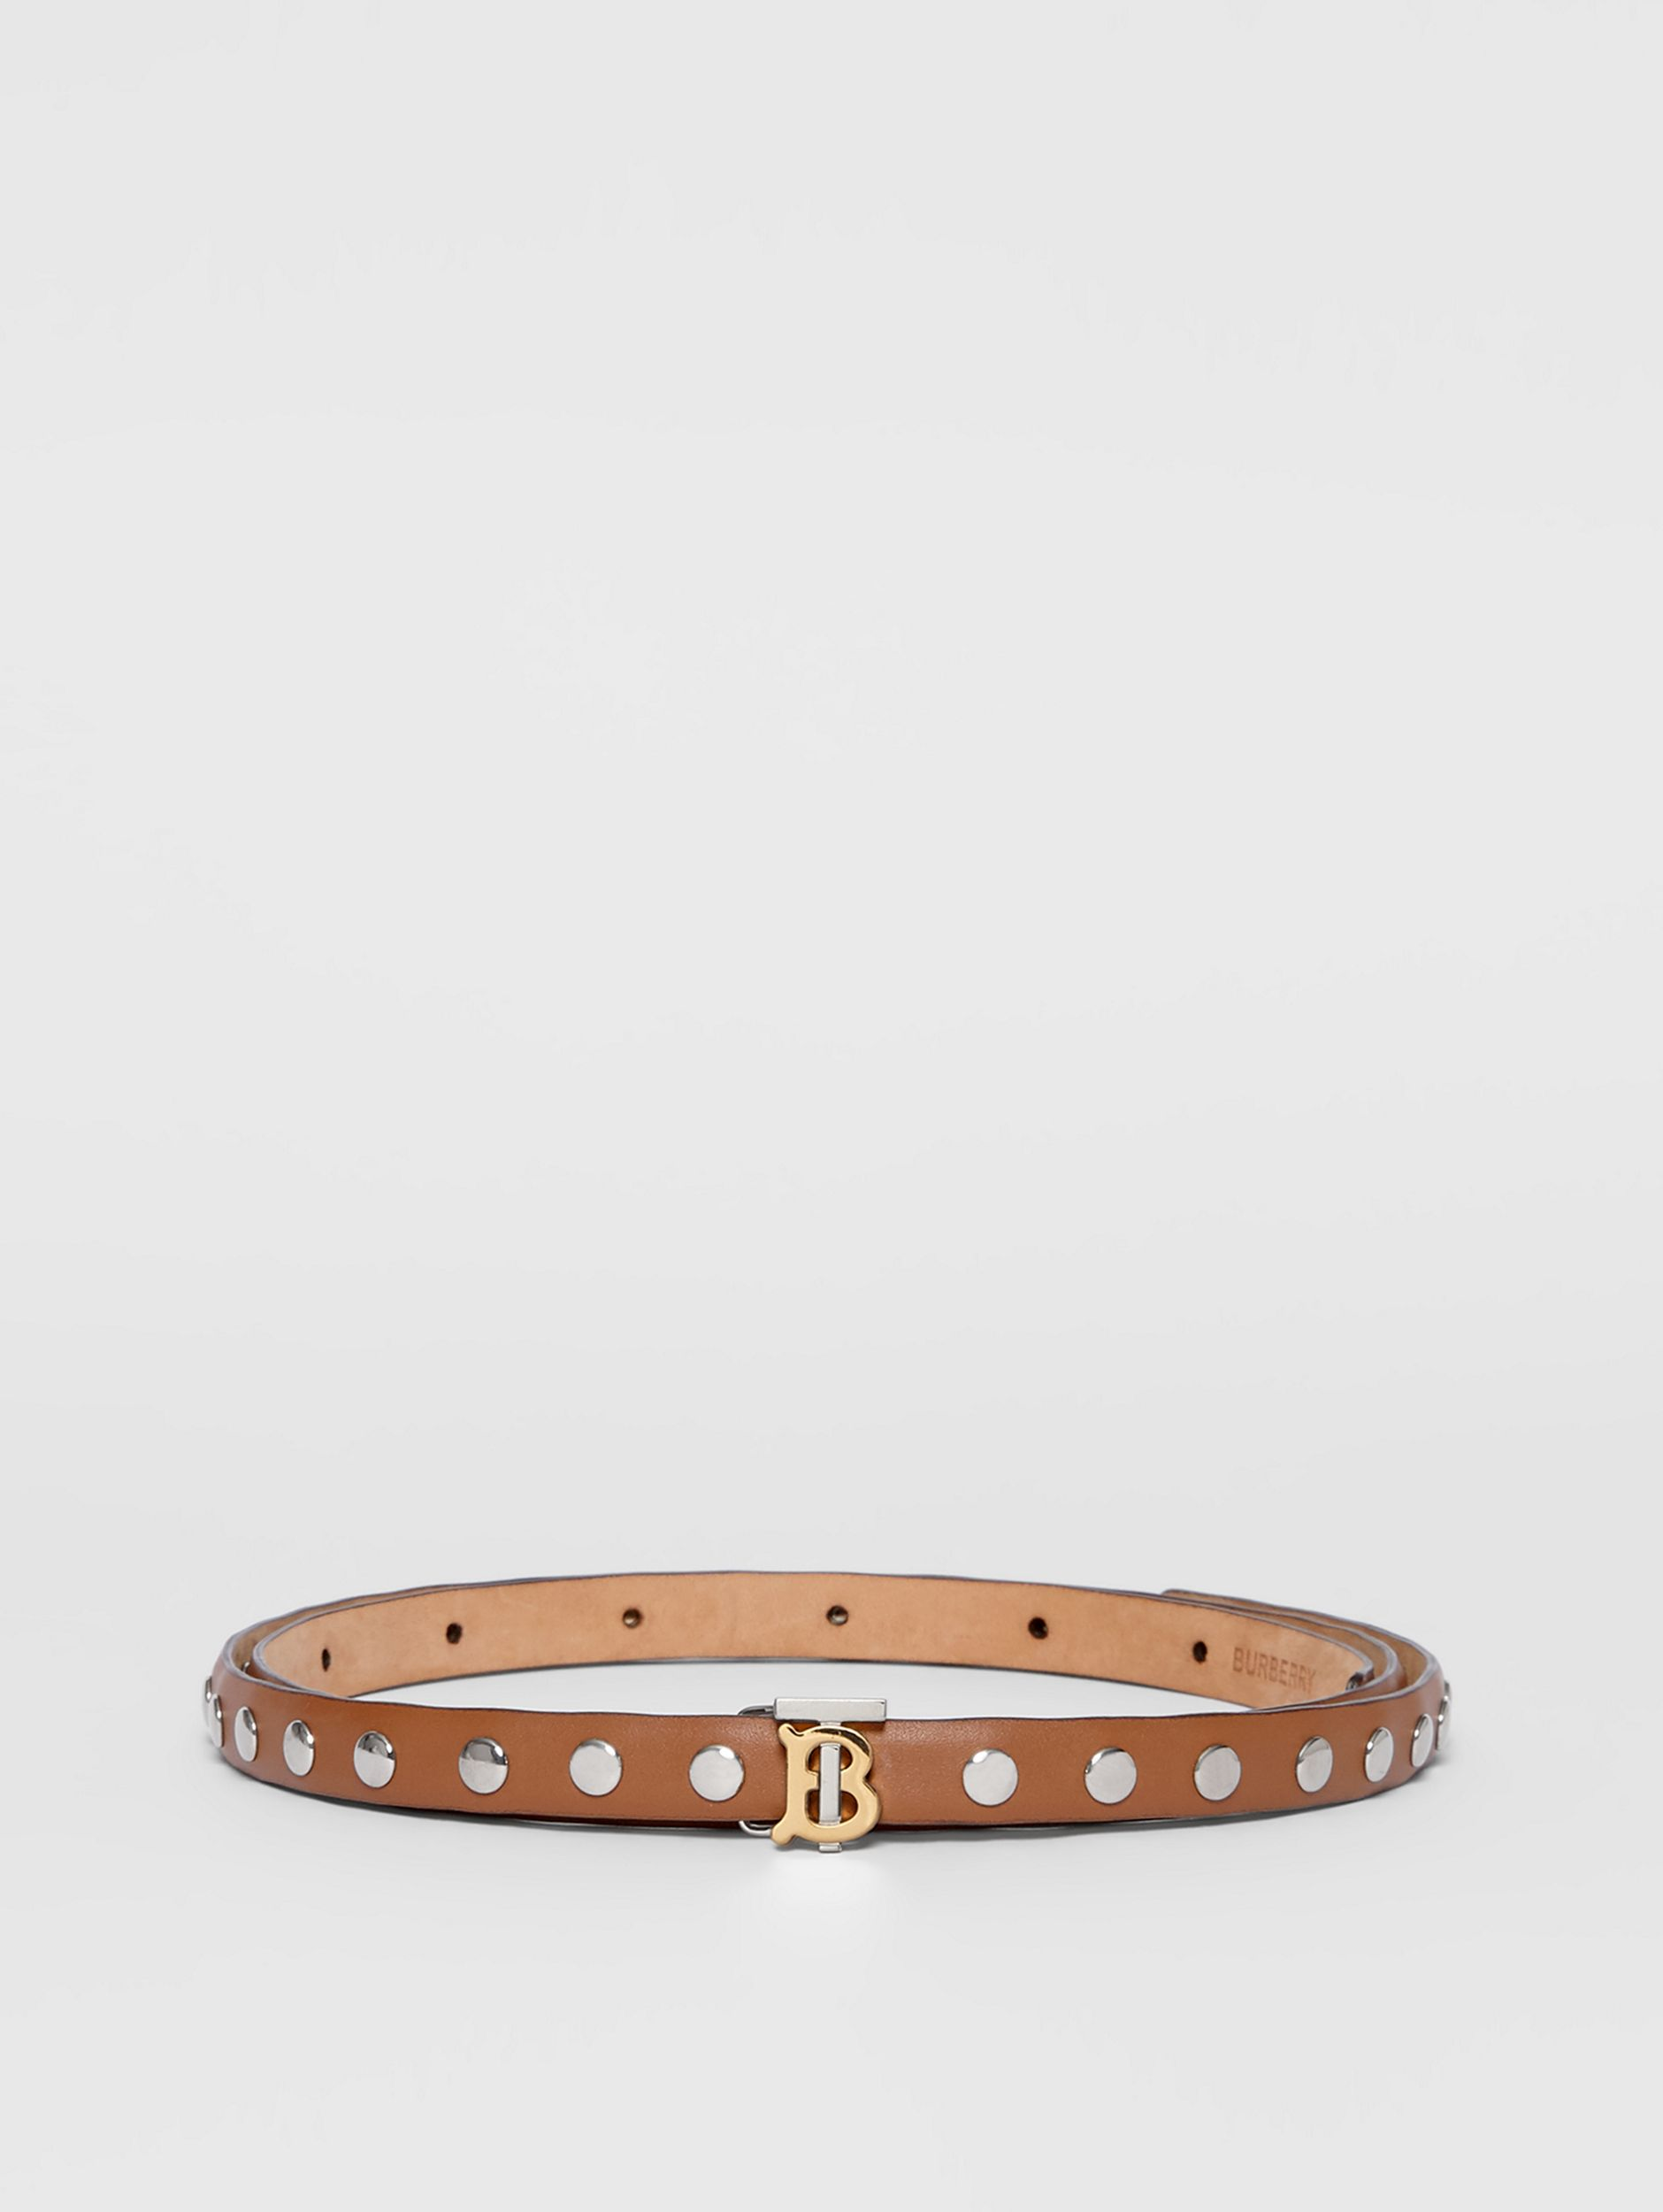 Monogram Motif Studded Leather Belt in Malt Brown/palladio - Women | Burberry United Kingdom - 4